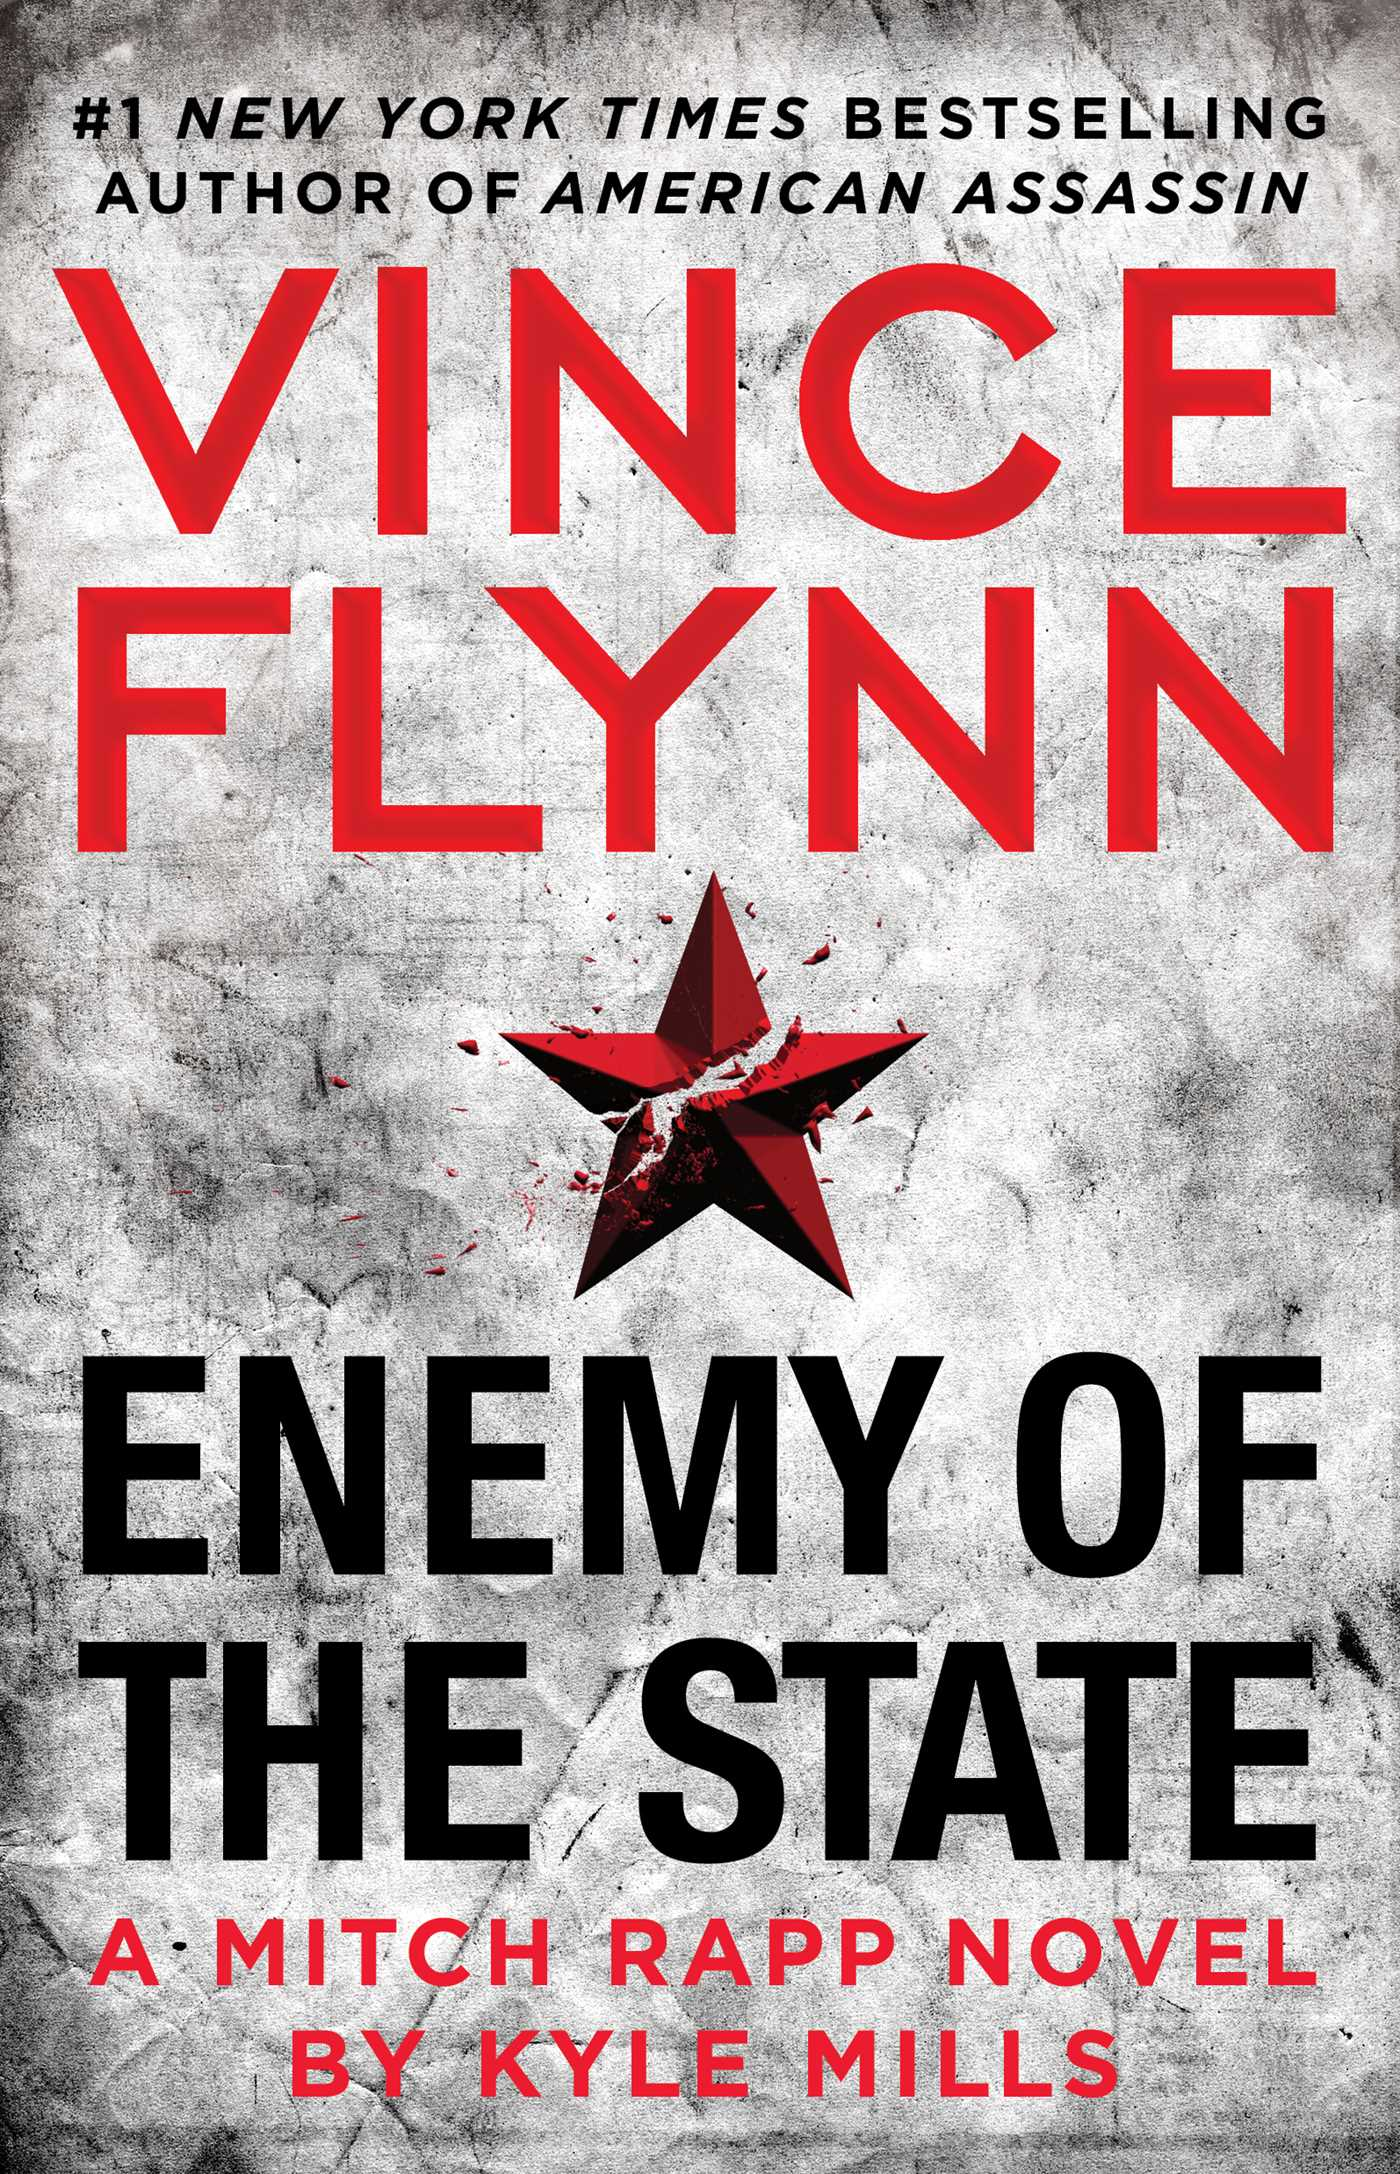 Enemy of the state 9781501184192 hr